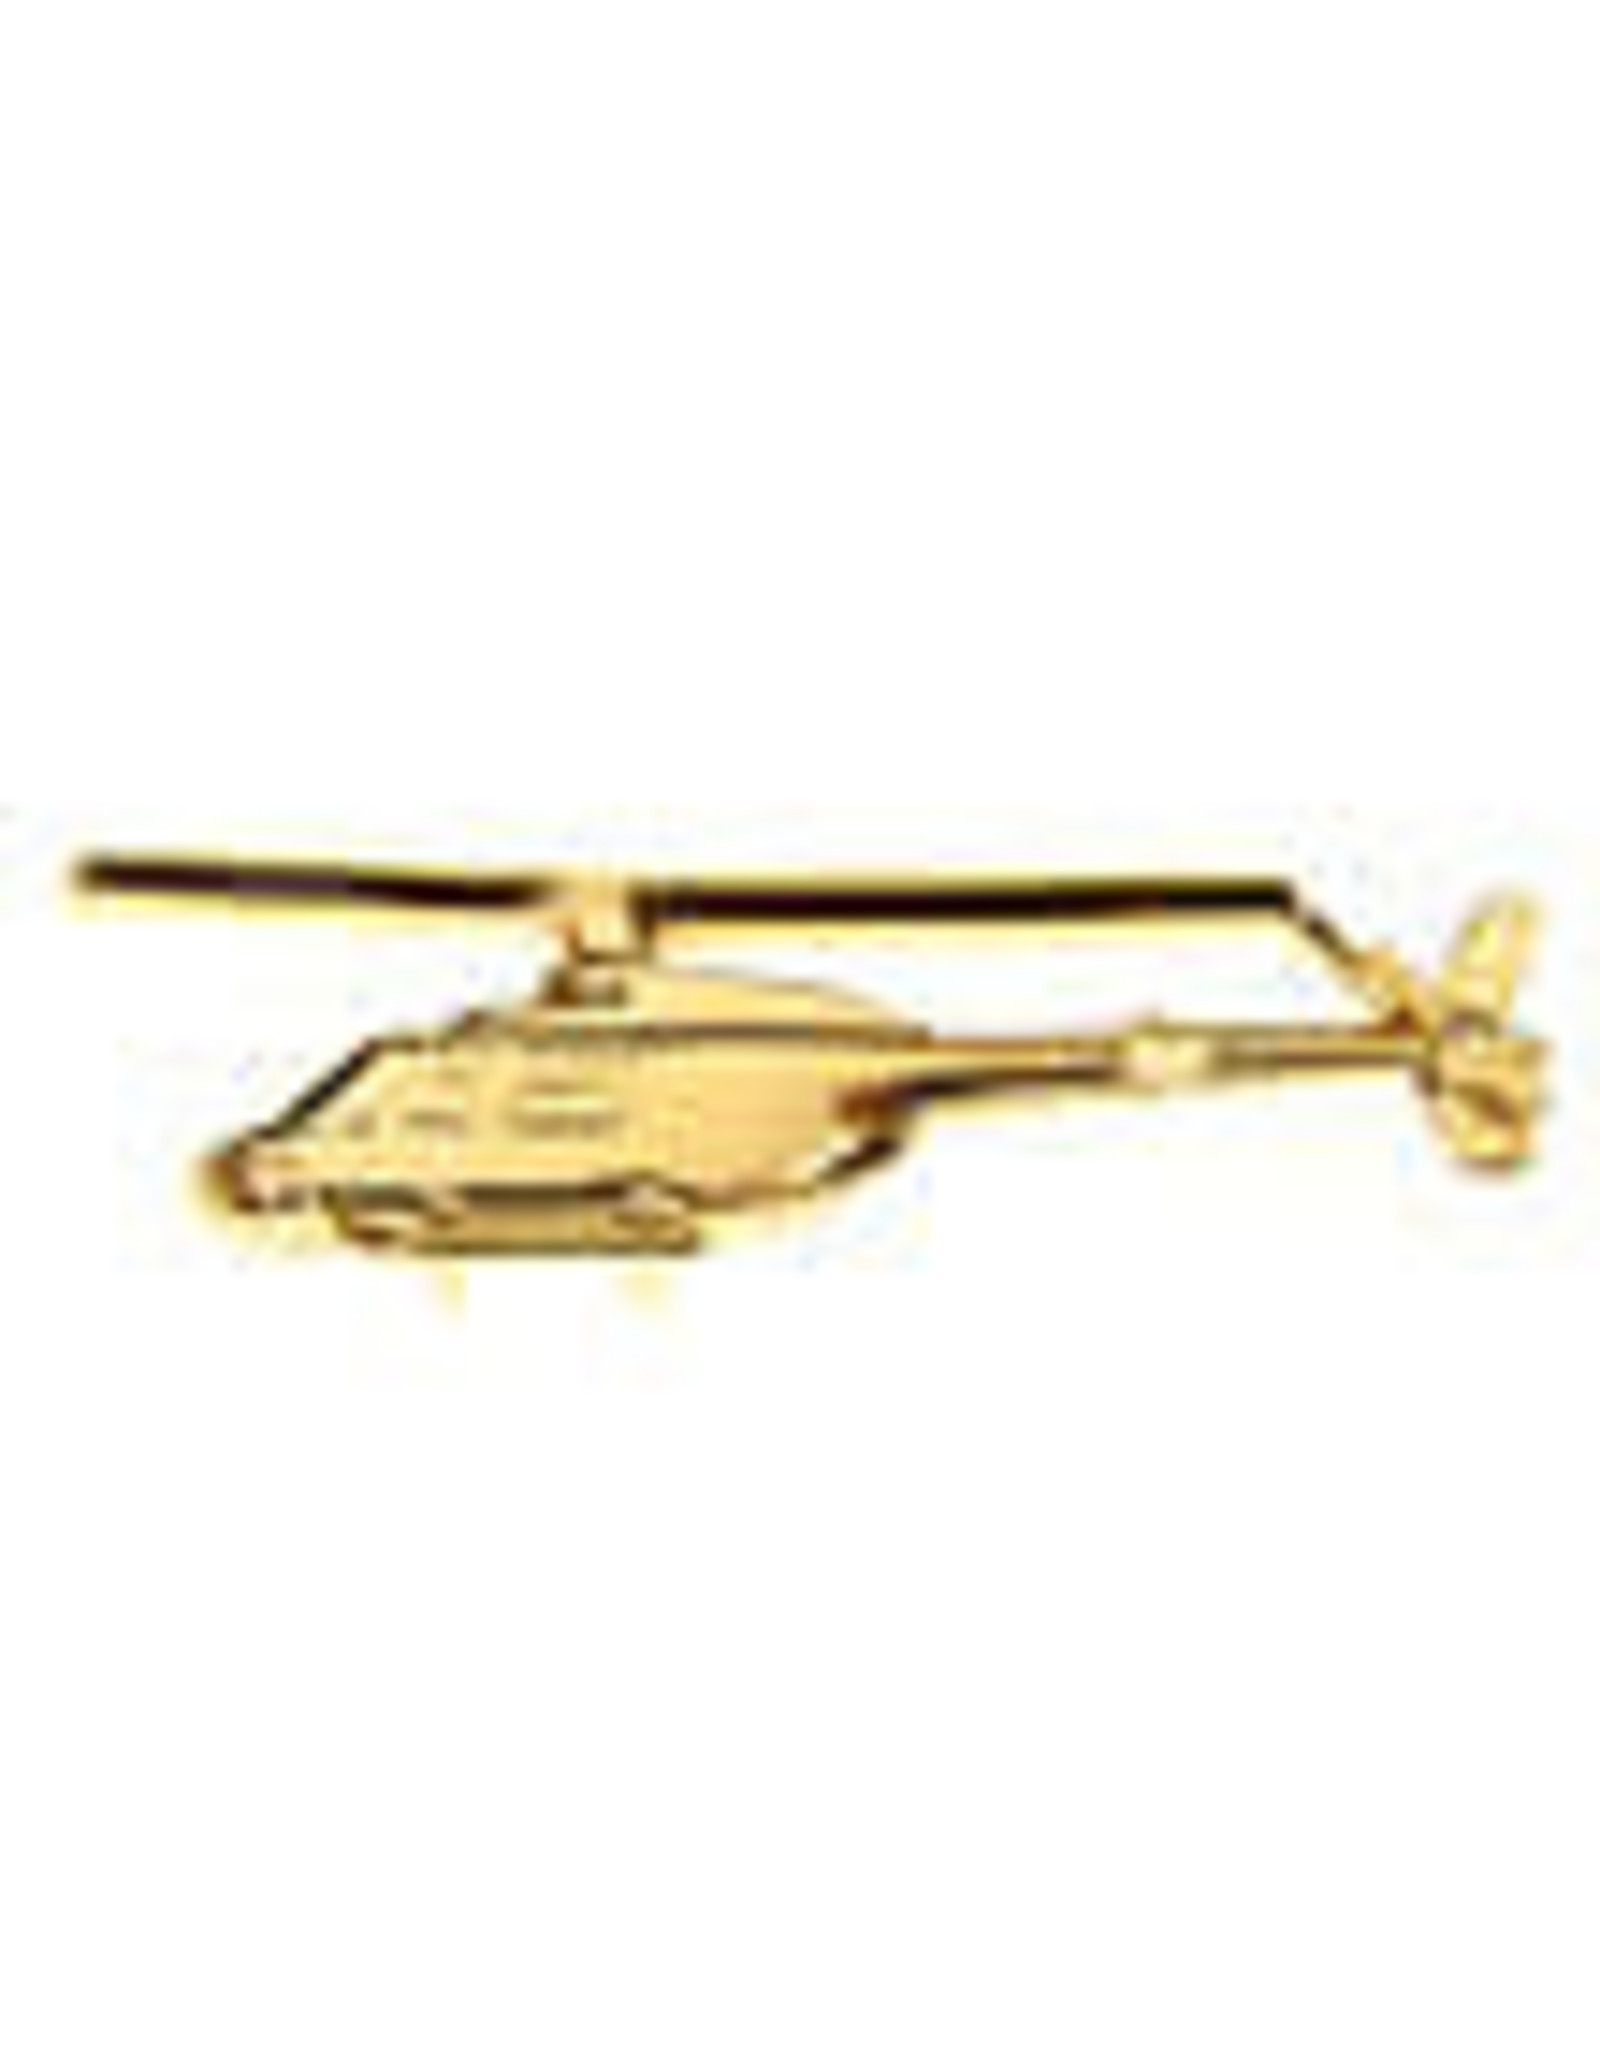 Clivedon Pin Badge OH-58 Kiowa, Pin, gold